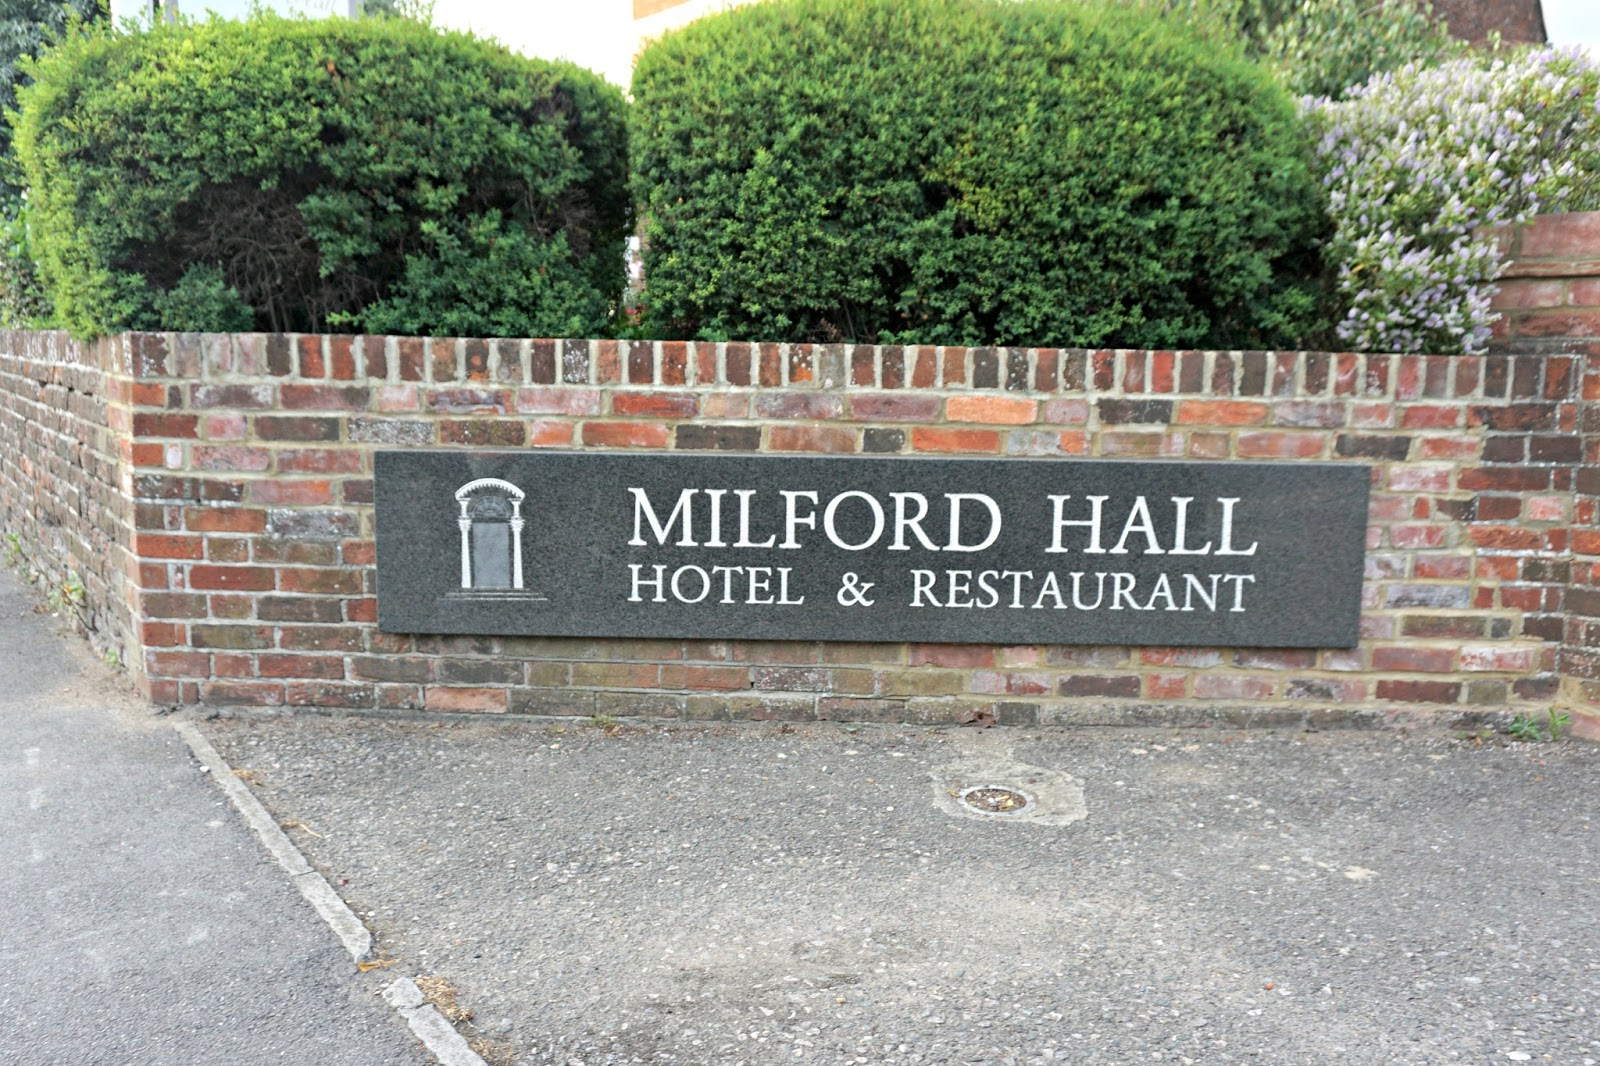 The Milford Hall Hotel Salisbury Wiltshire Stonehenge Amesbury Restaurant Blog Review